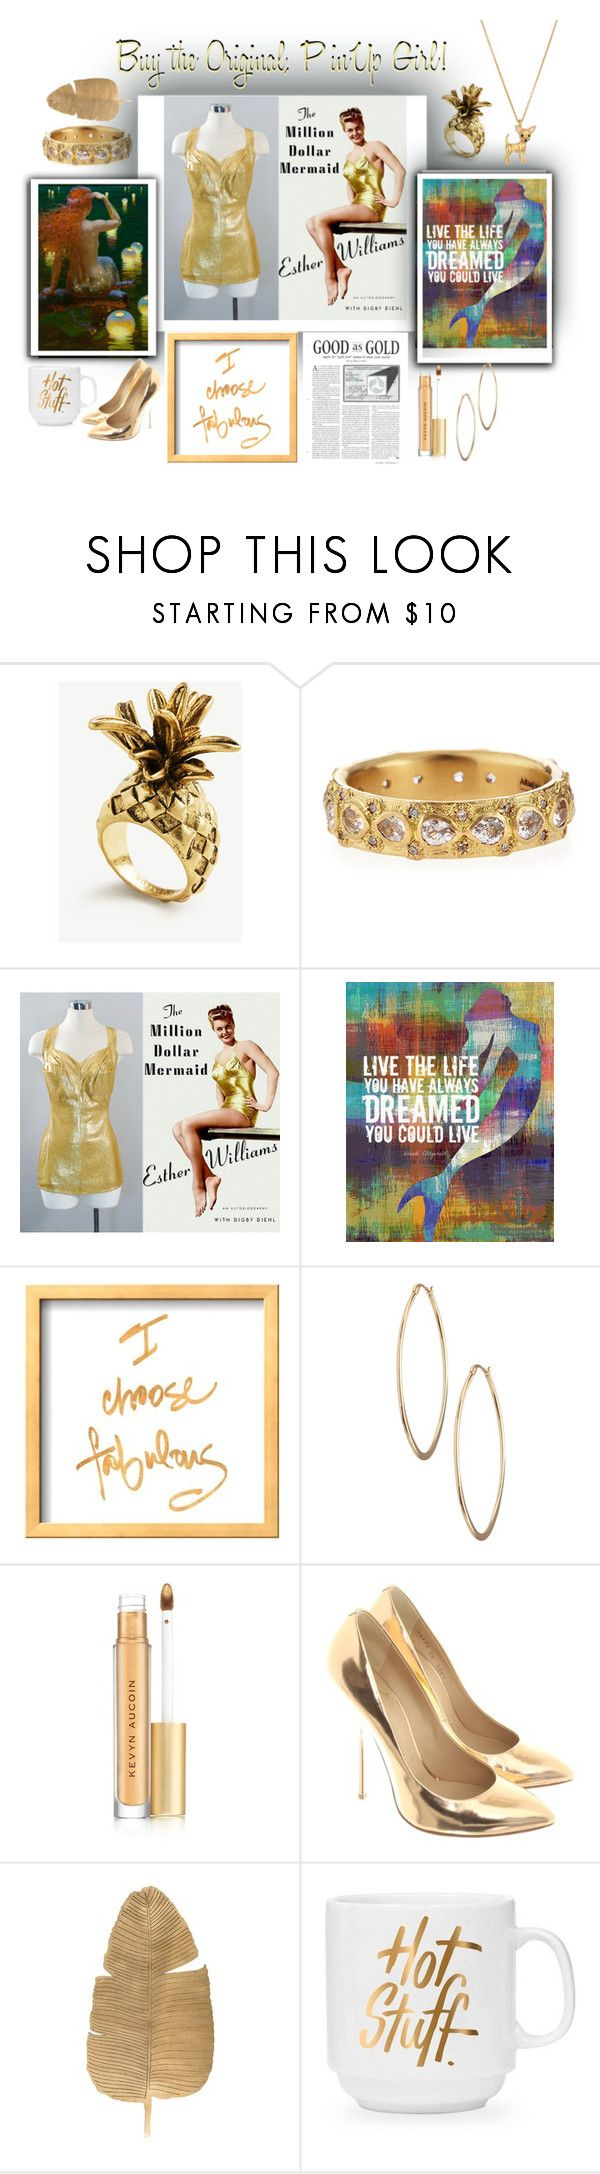 """""""good as gold, original Esther Williams gold!"""" by caroline-buster-brown ❤ liked on Polyvore featuring Ann Taylor, Armenta, Lydell NYC, Kevyn Aucoin, Giuseppe Zanotti, Kate Spade and metallicswimwear"""